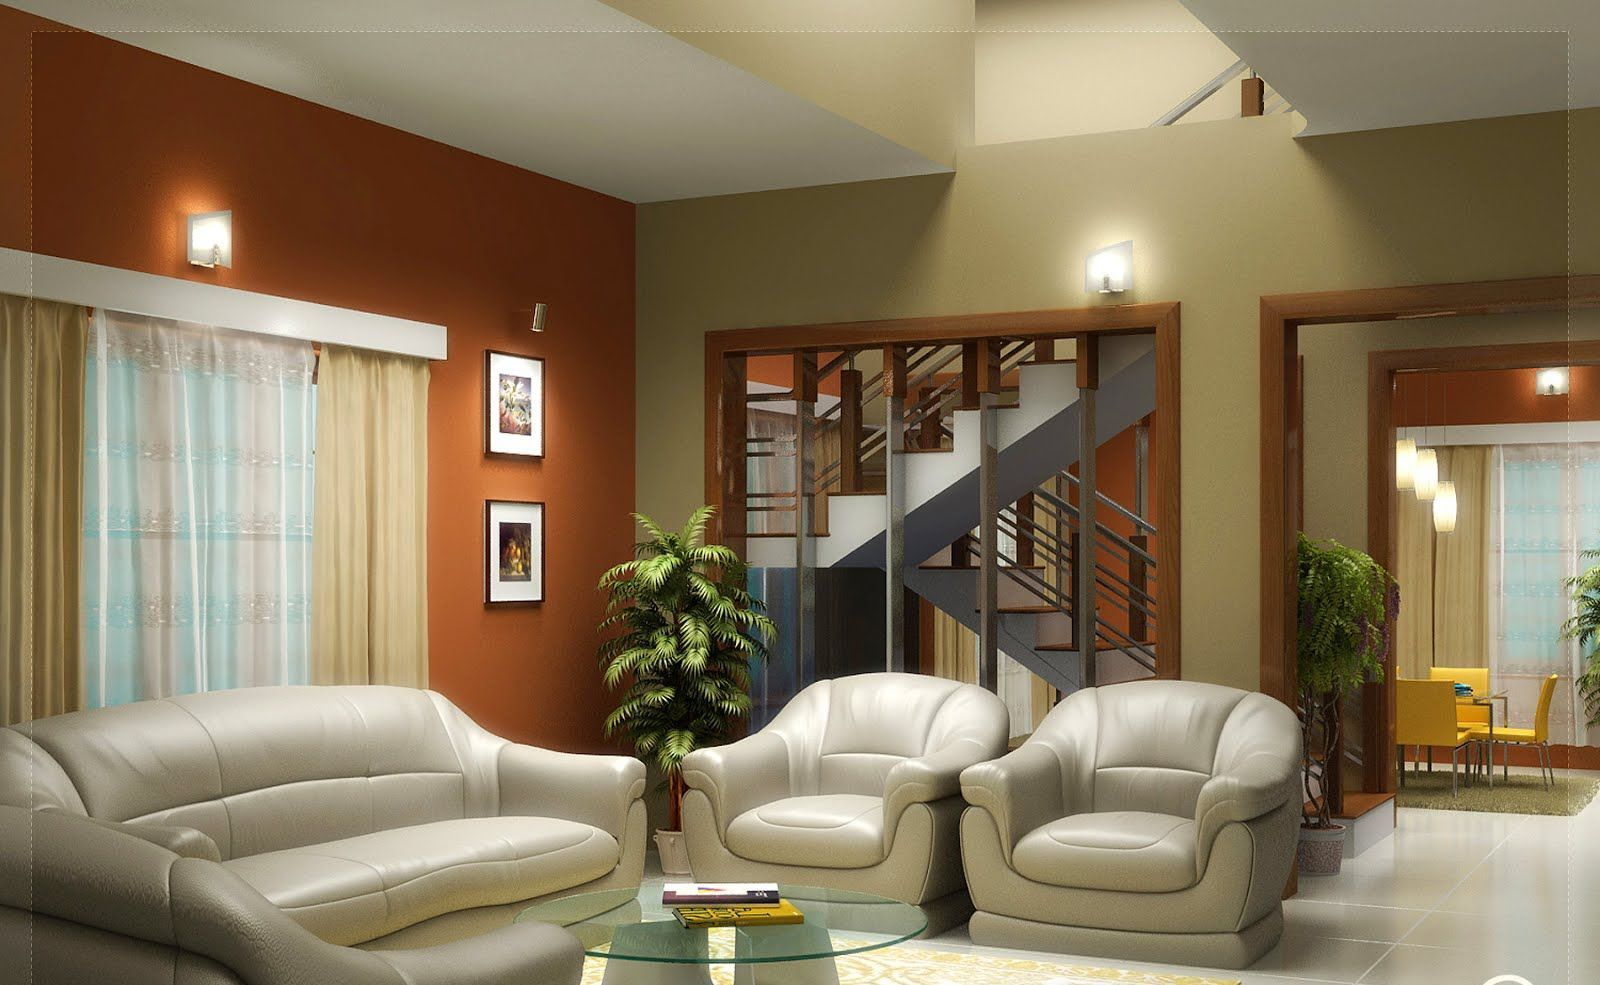 best feng shui pictures for living room design ideas find and save the inspiring decorating however if you don t know where to start then these tips in this article might be useful